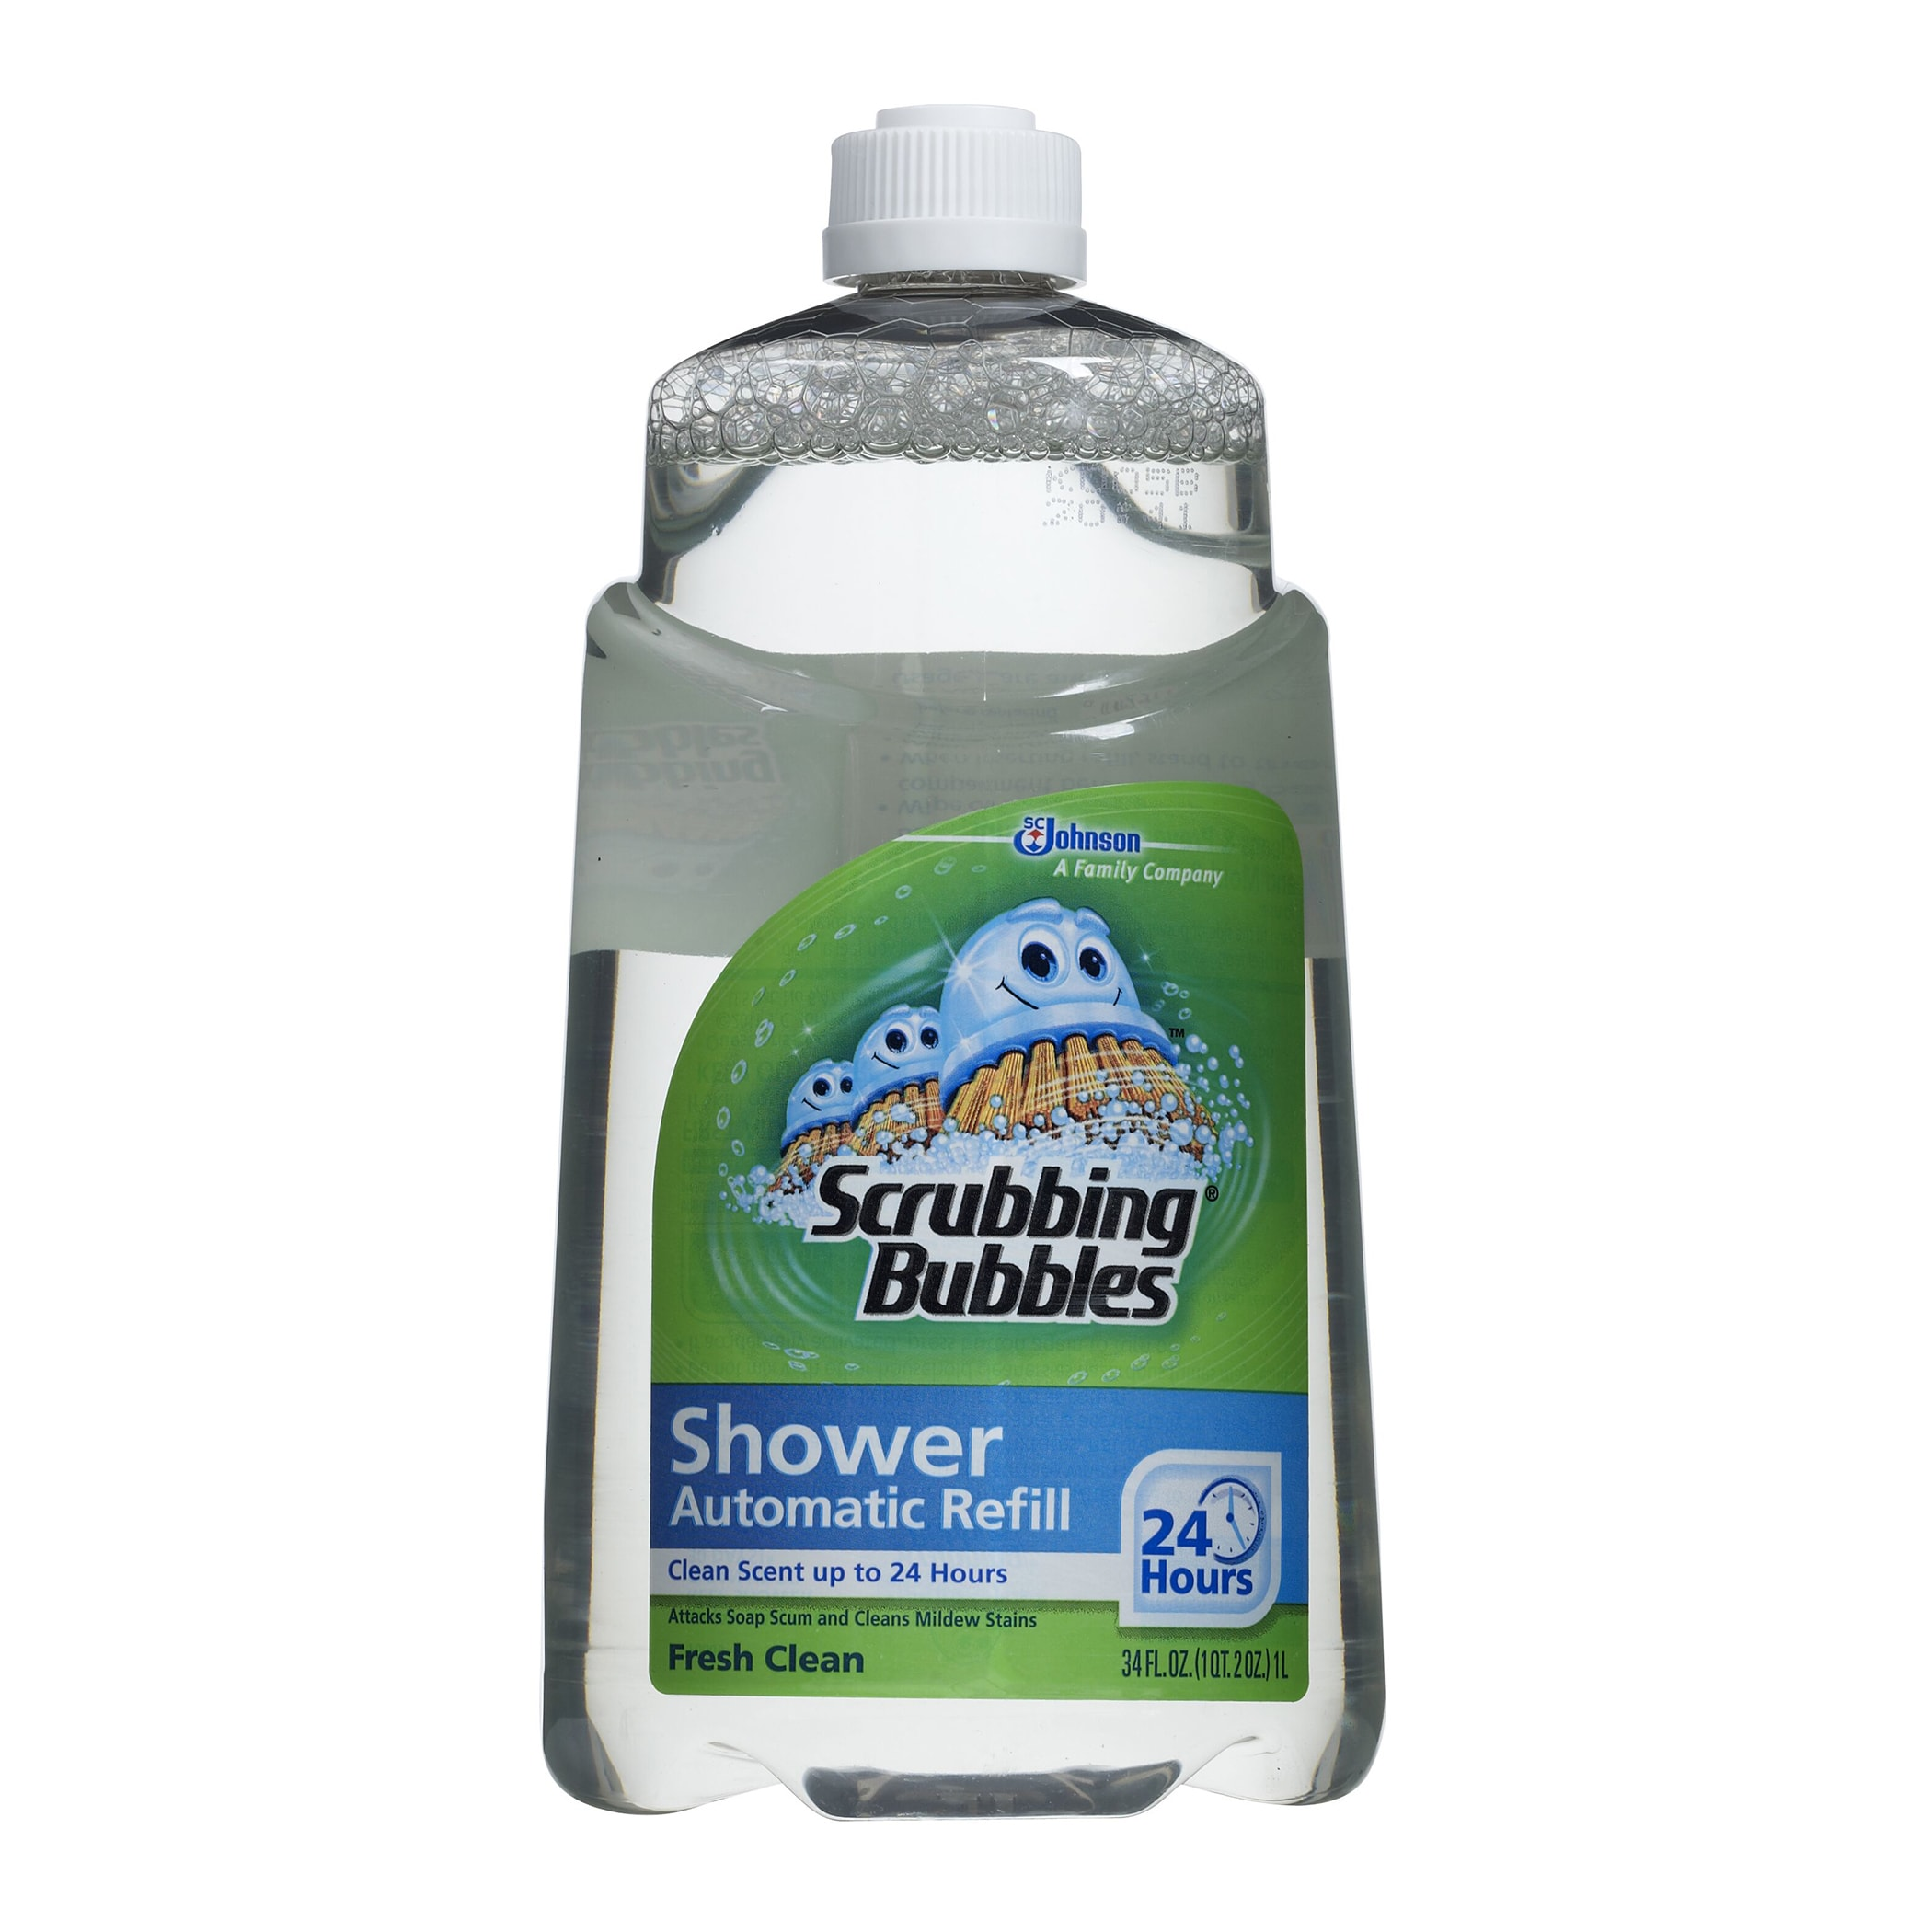 SC Johnson 70155 34 oz. Scrubbing Bubbles Automatic Showe...